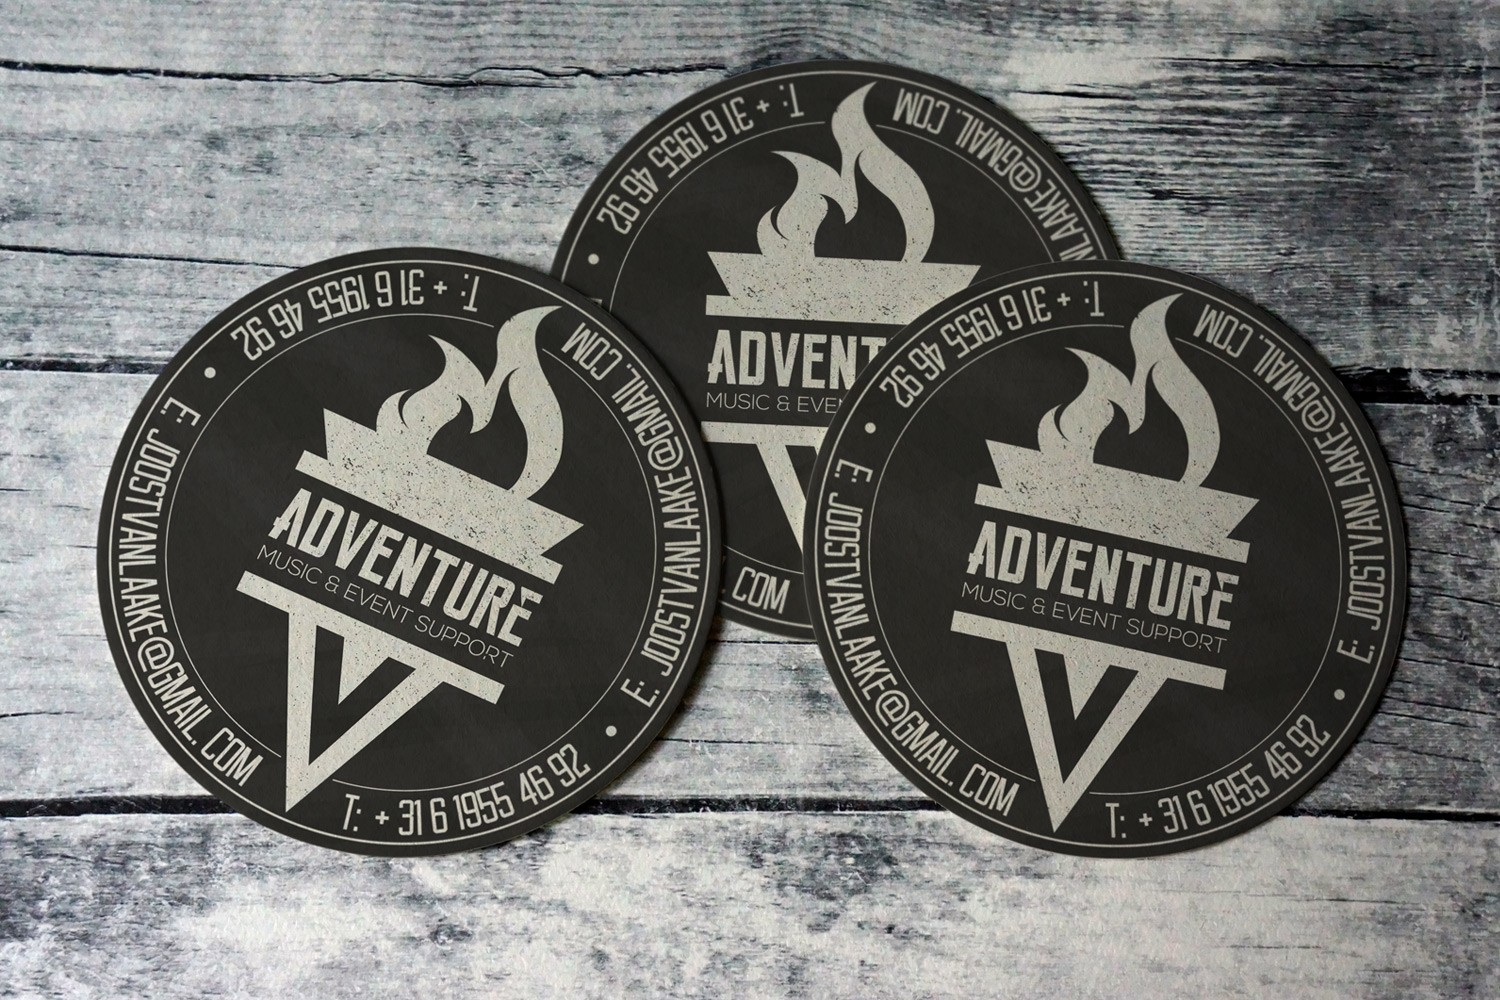 Adventure Music Event Support – Stickers